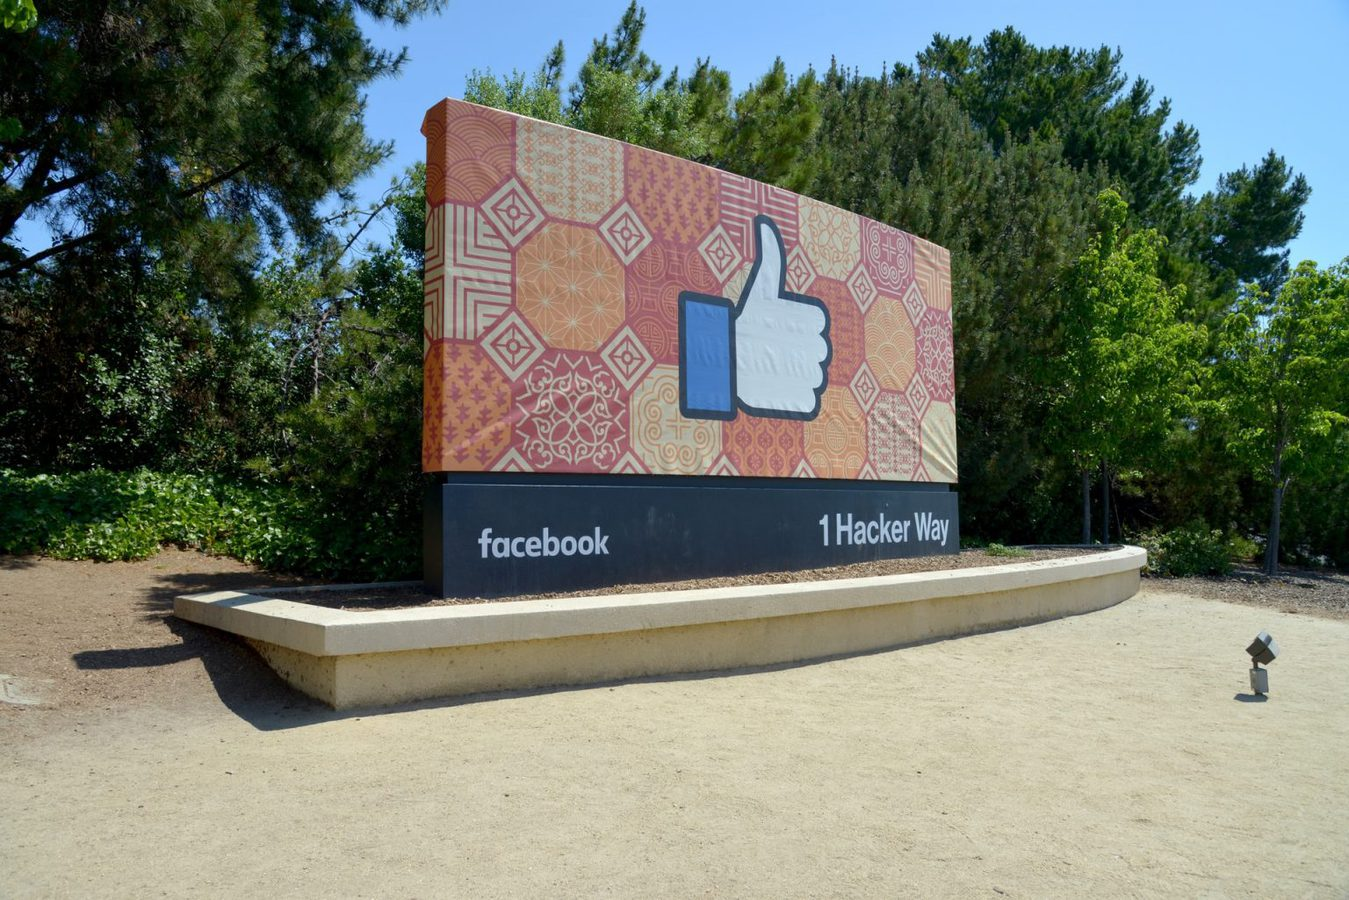 Facebook thumb sign on a street outside